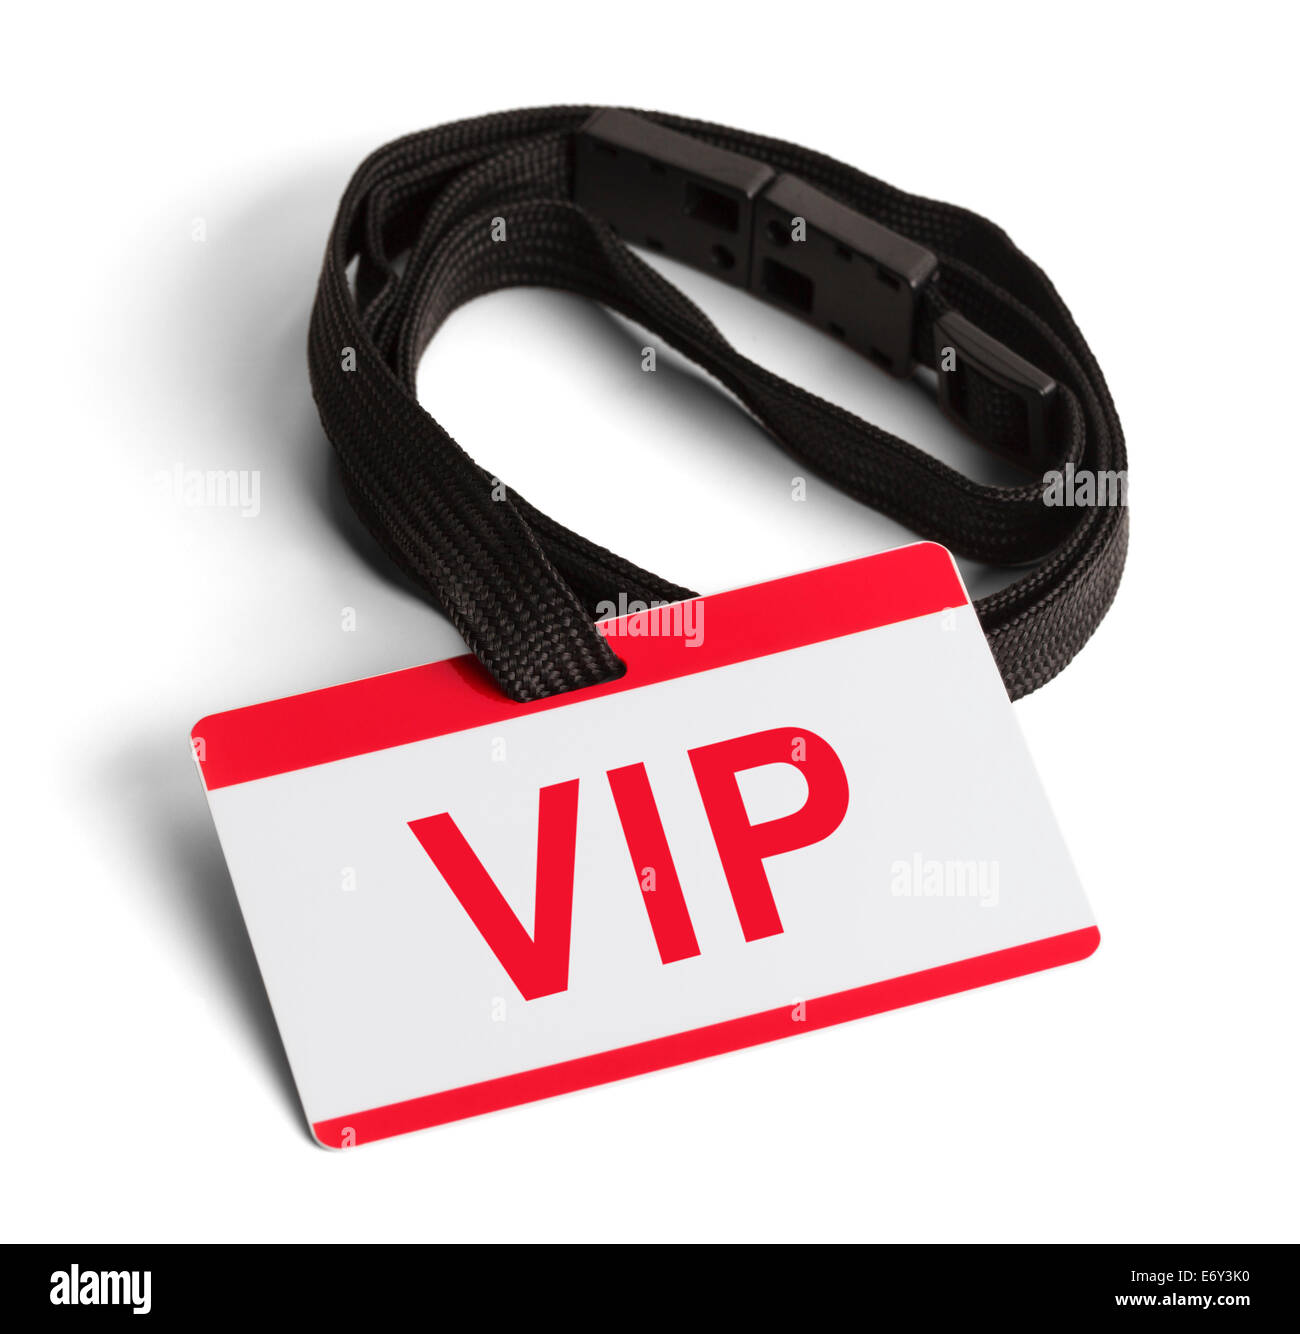 Red and White VIP ID Card Isolated on White Background. - Stock Image